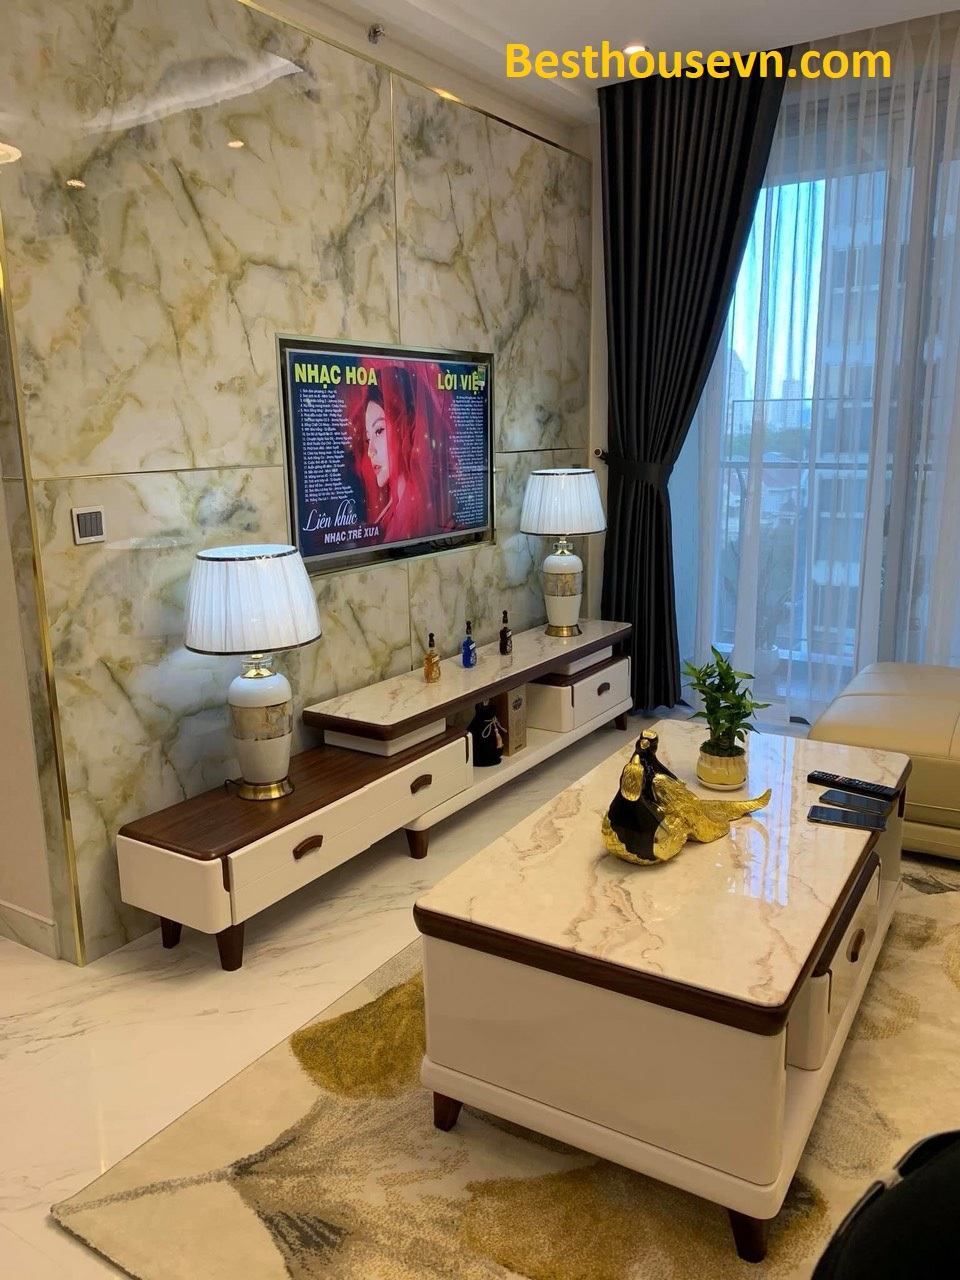 Mitown-89sqm-apartment-for-rent-in-phu-my-hung-district-7-hcmc-4